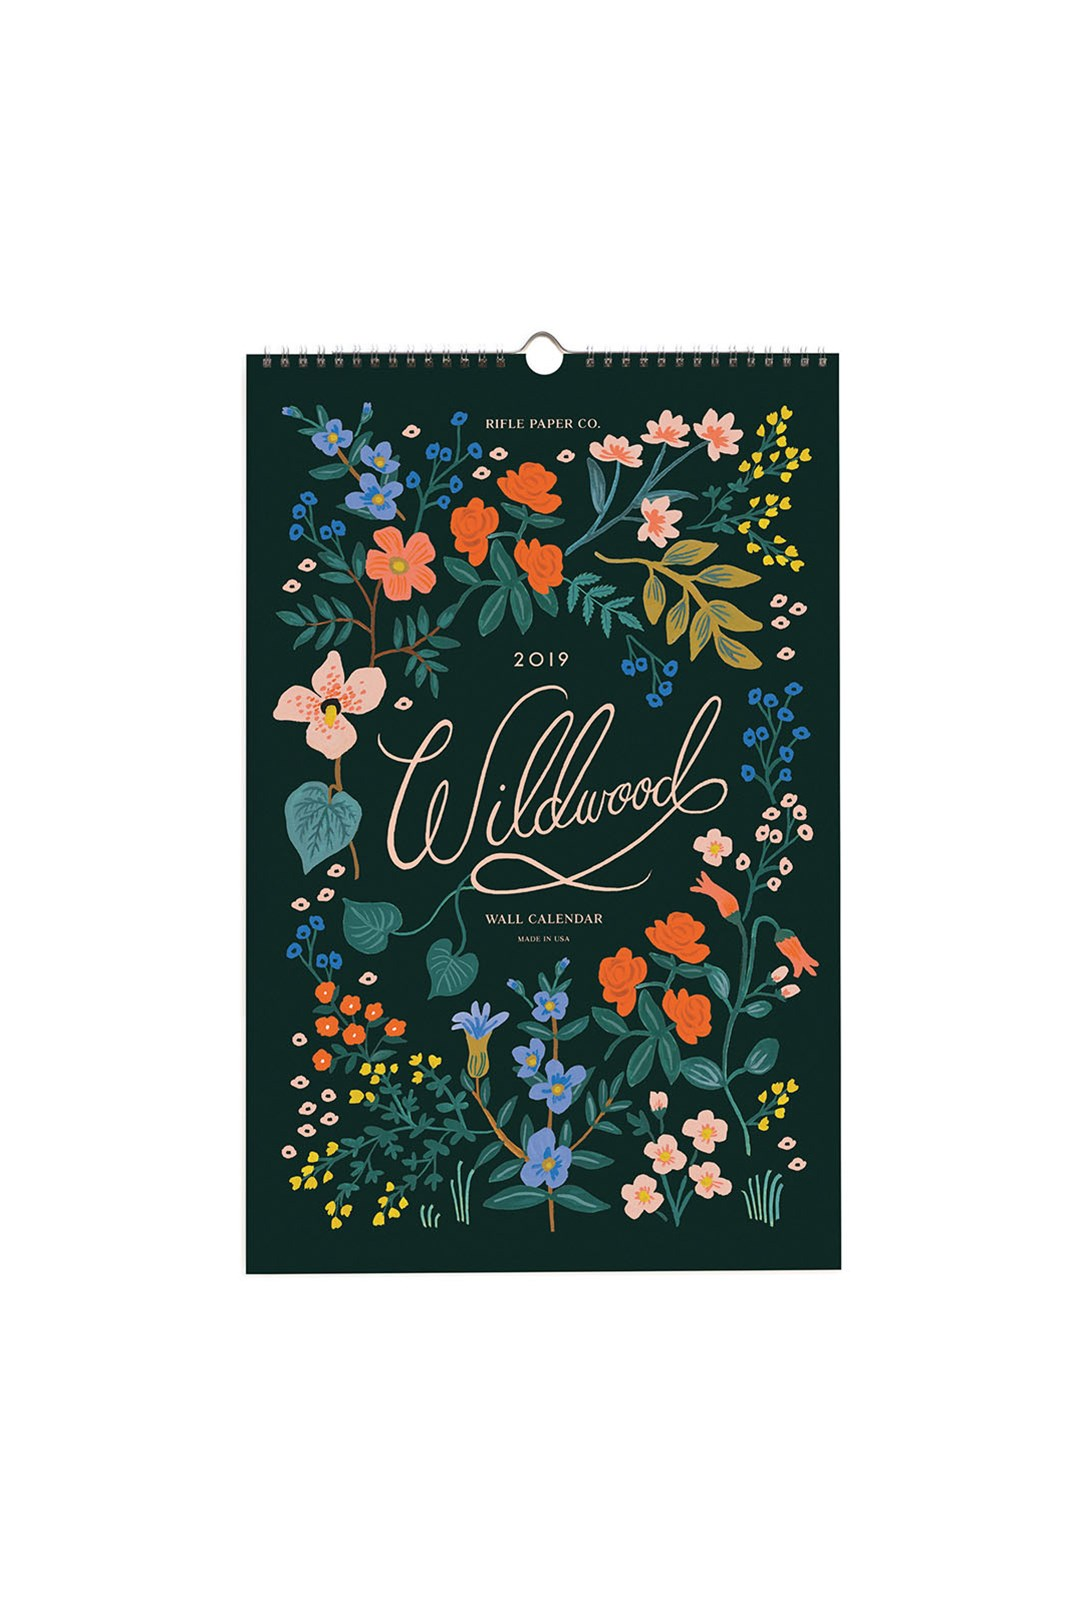 Rifle Paper Co - 2019 Wall Calendar - Wildwood